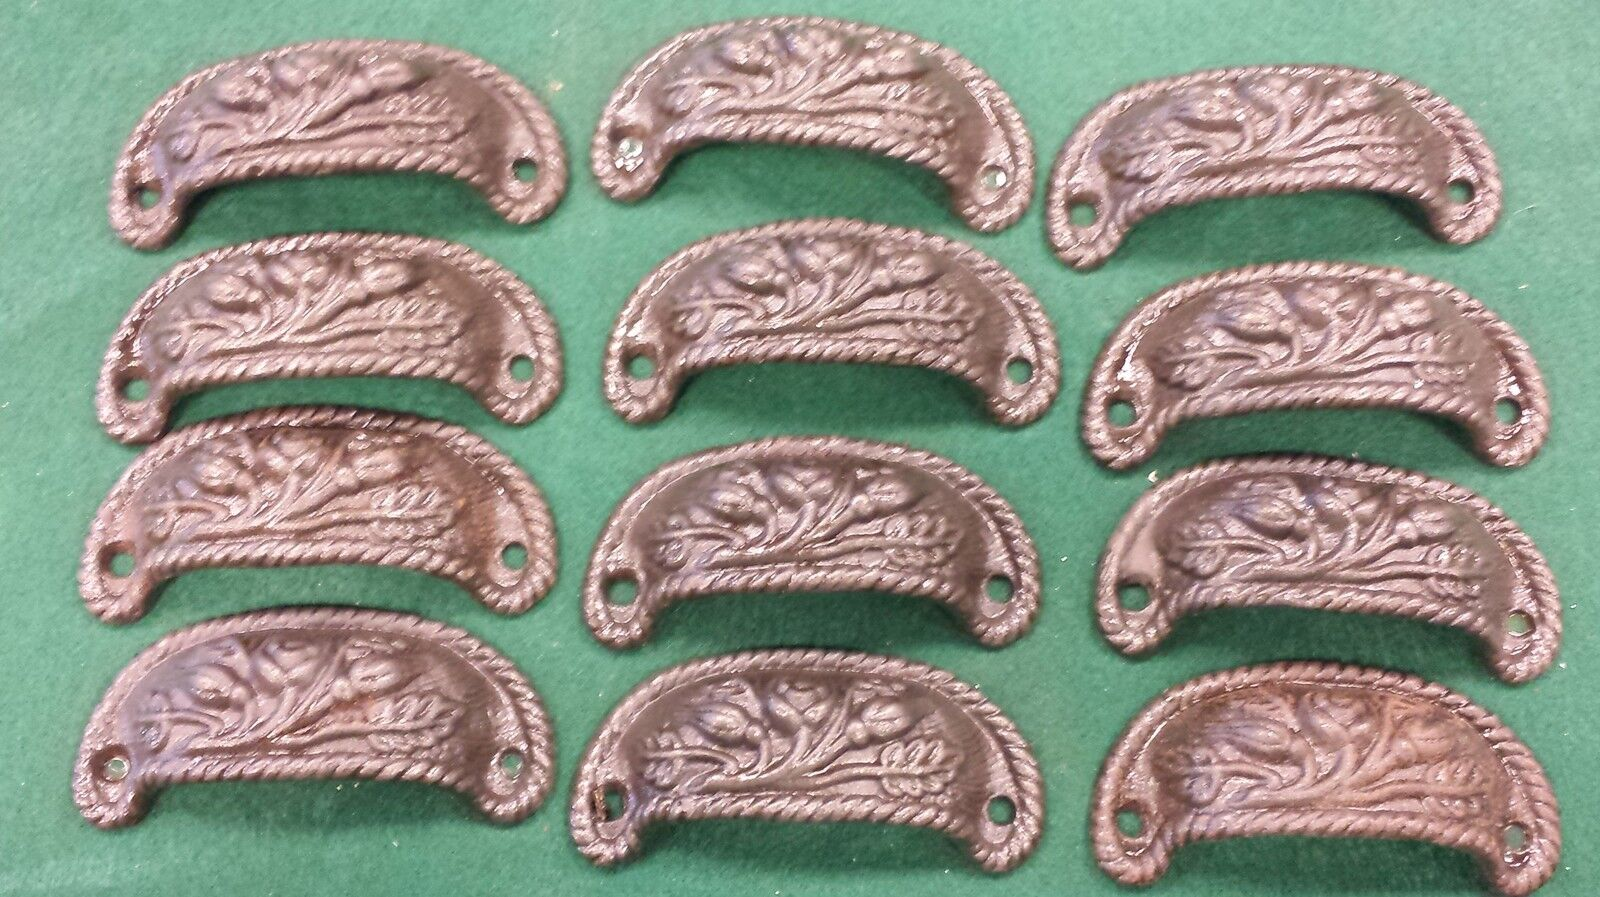 DRAWER PULLS EMBOSSED FLORAL DESIGN CAST IRON VICTORIAN STYLE SET OF 12